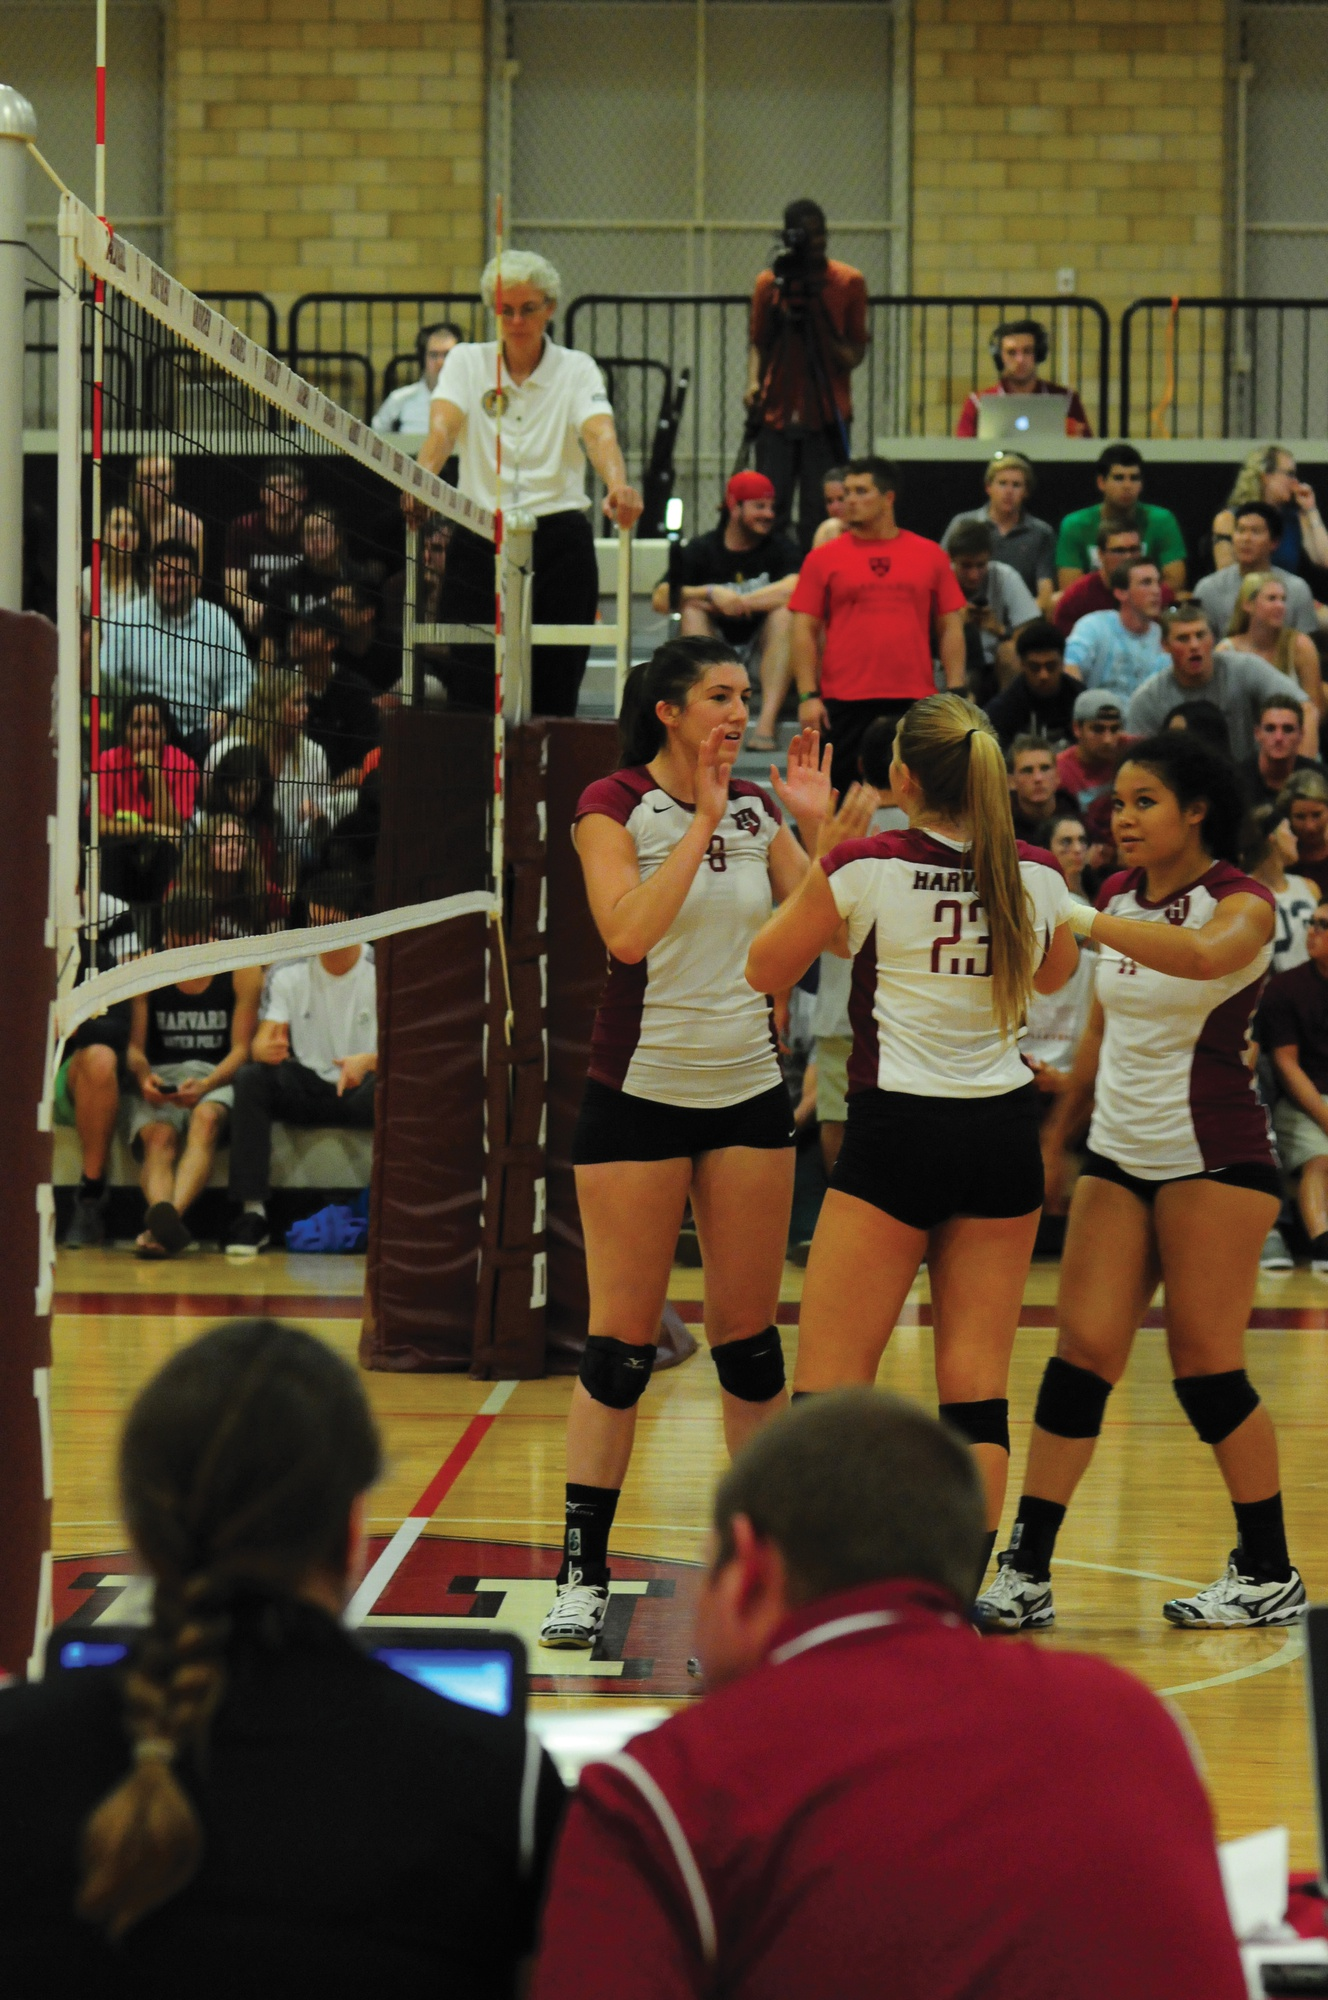 In an opening weekend that saw just three Harvard victories in 13 games, women's volleyball was a bright spot, starting its season 2-0.